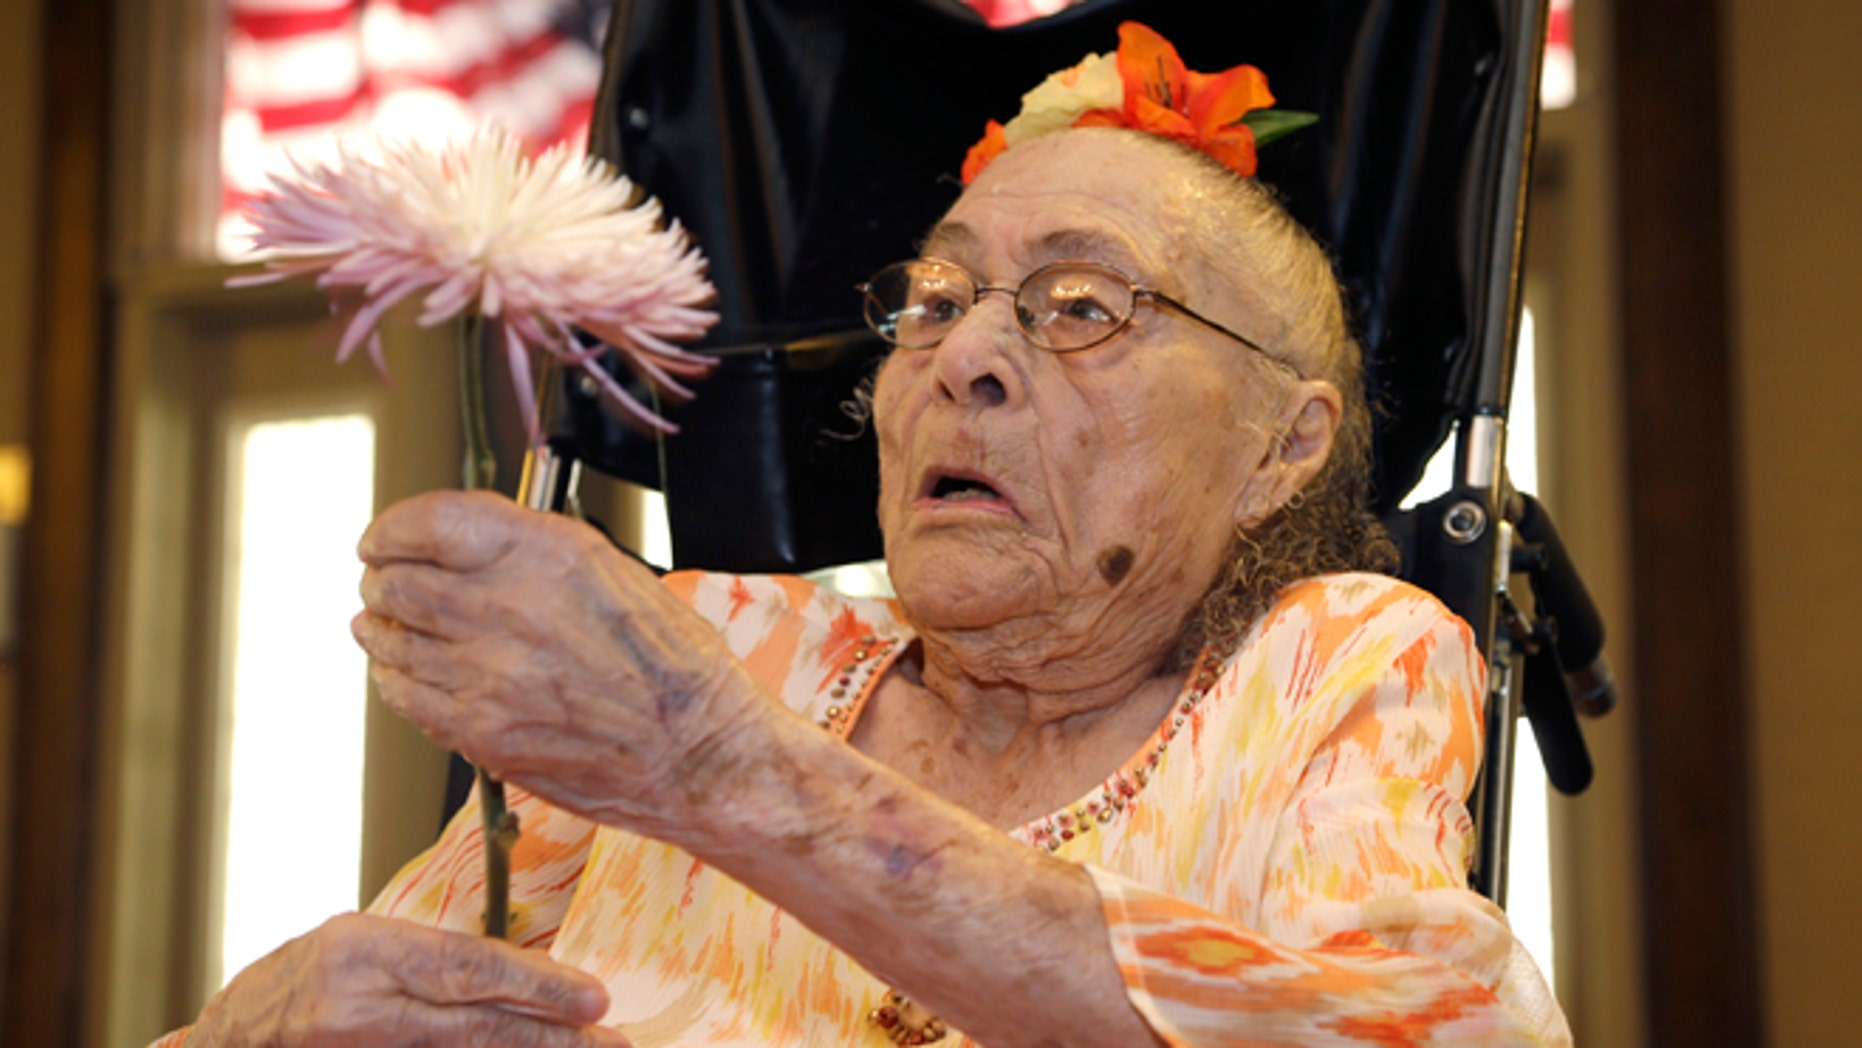 July 3, 2014: Gertrude Weaver holds a flower given to her a day before her 116th birthday at Silver Oaks Health and Rehabilitation Center in Camden, Ark.